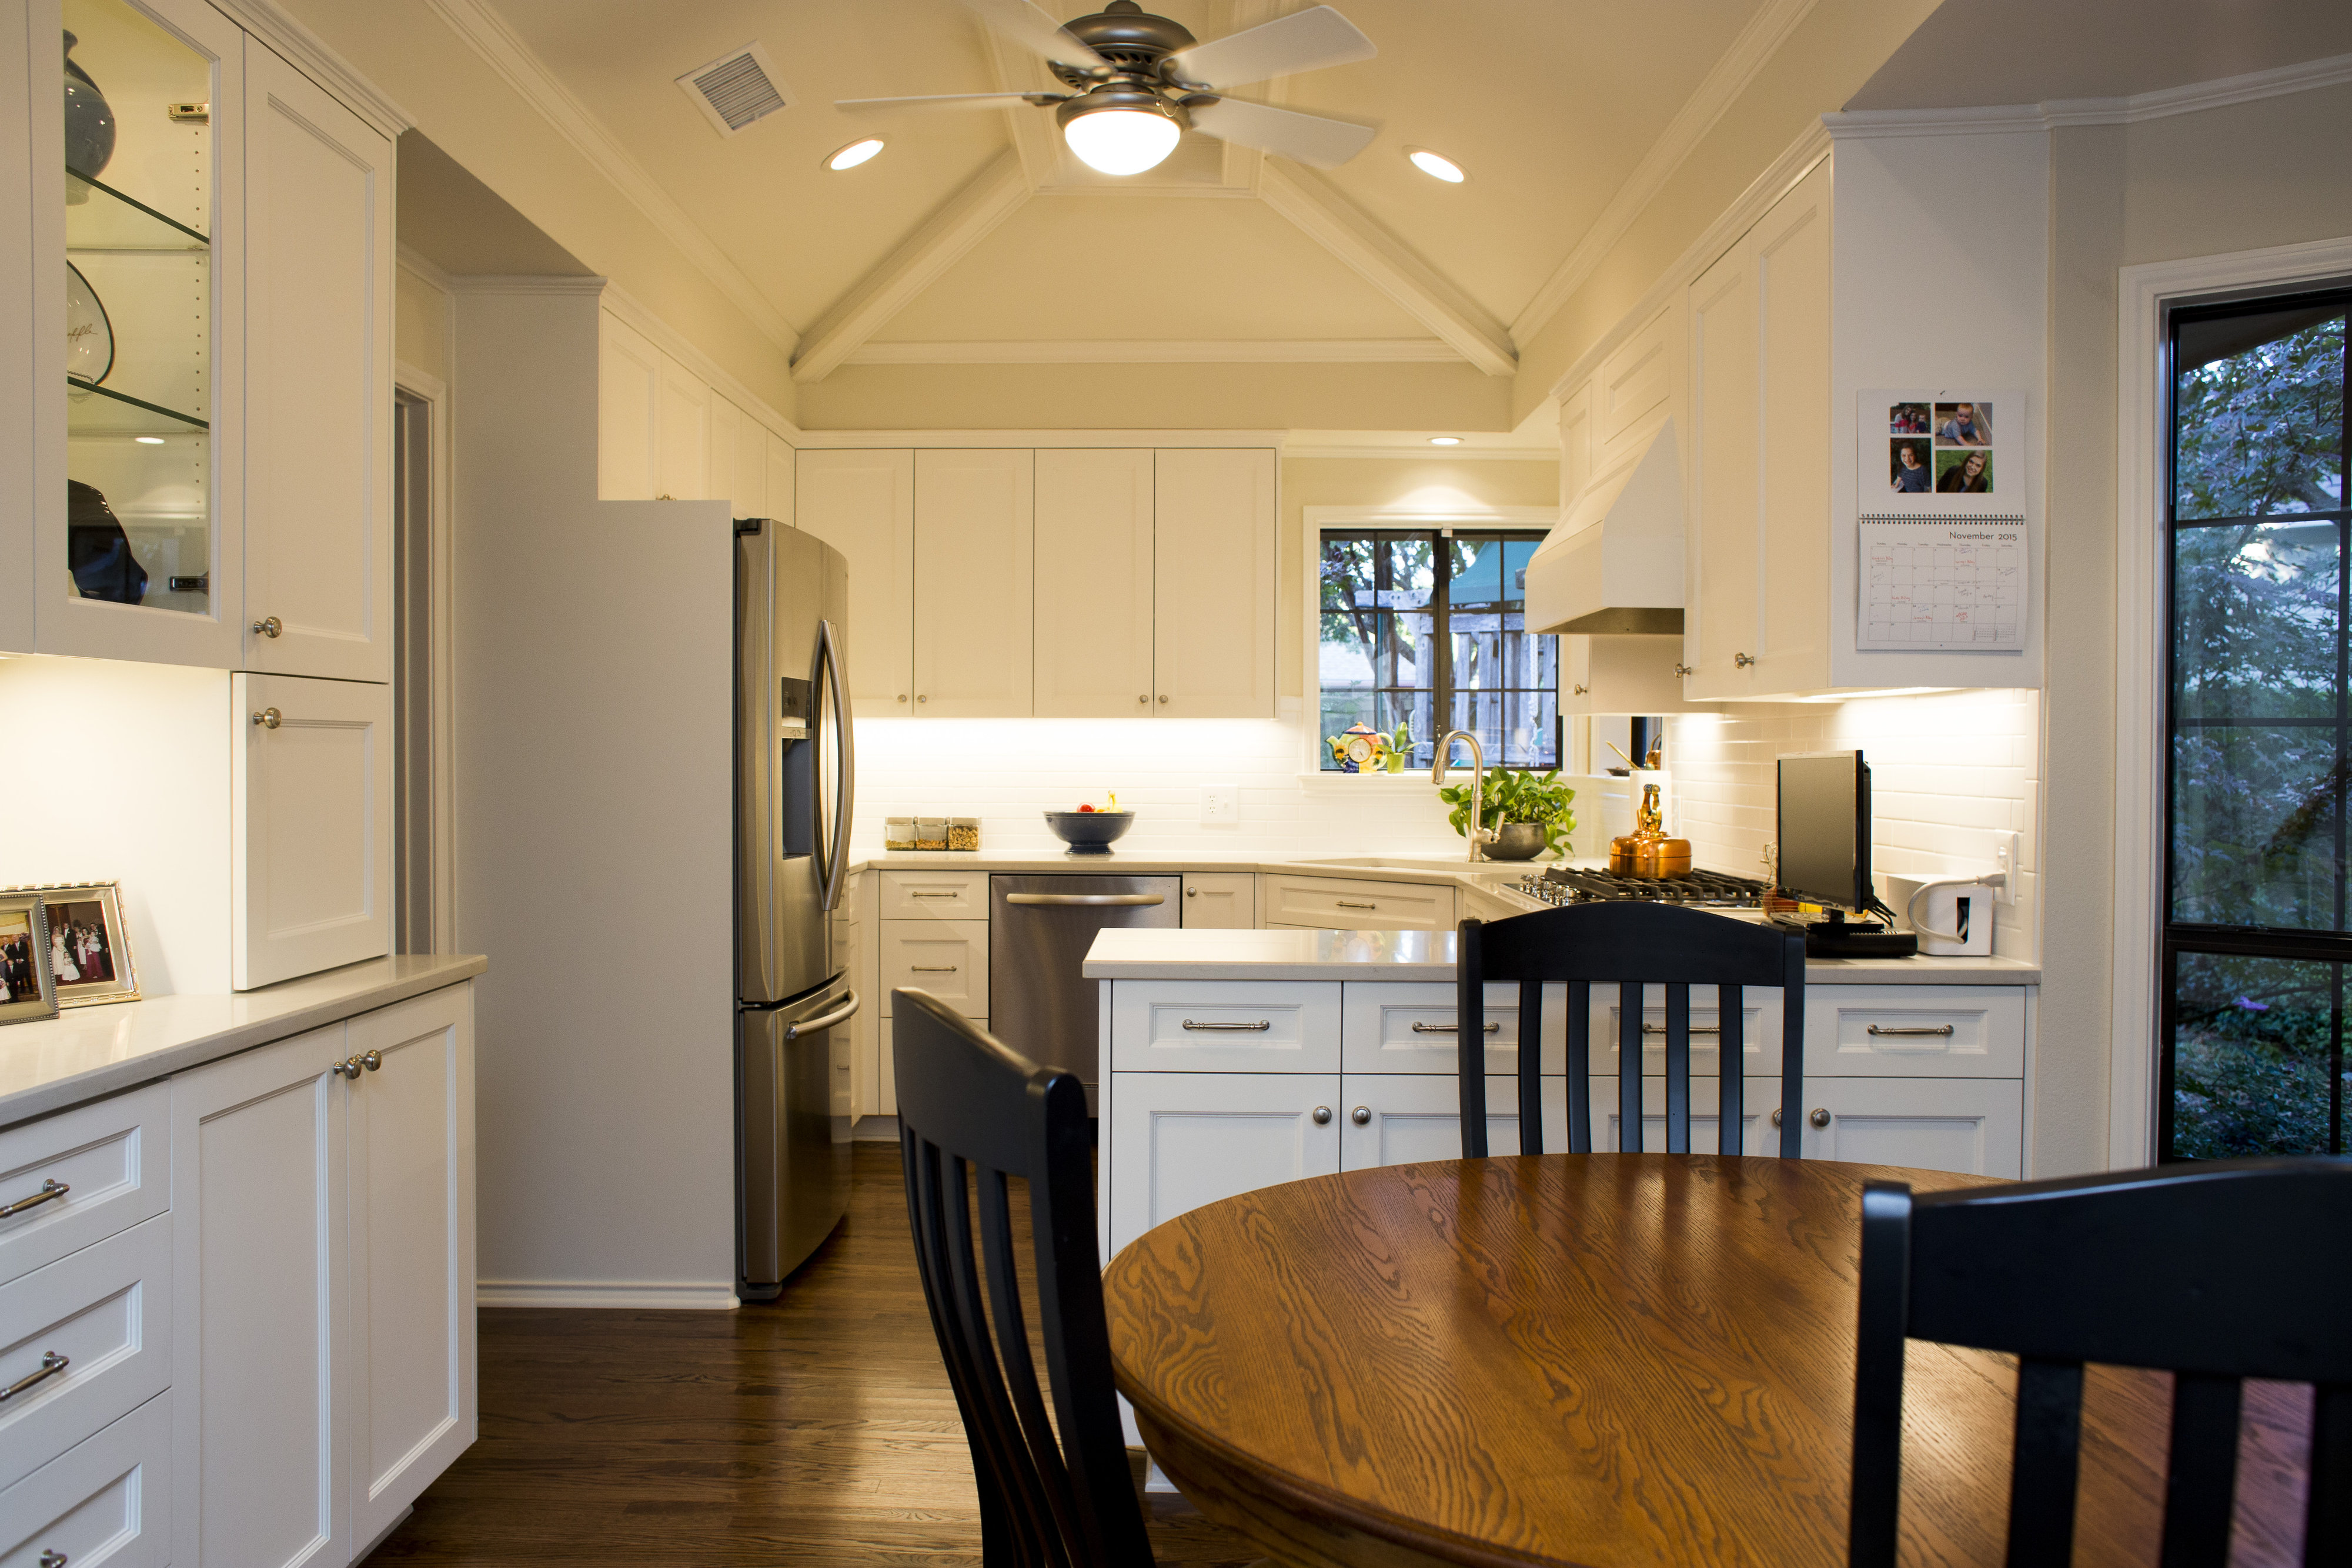 J Williams Construction Remodeling Inc Our Work Kitchen Remodeling Home Kitchen